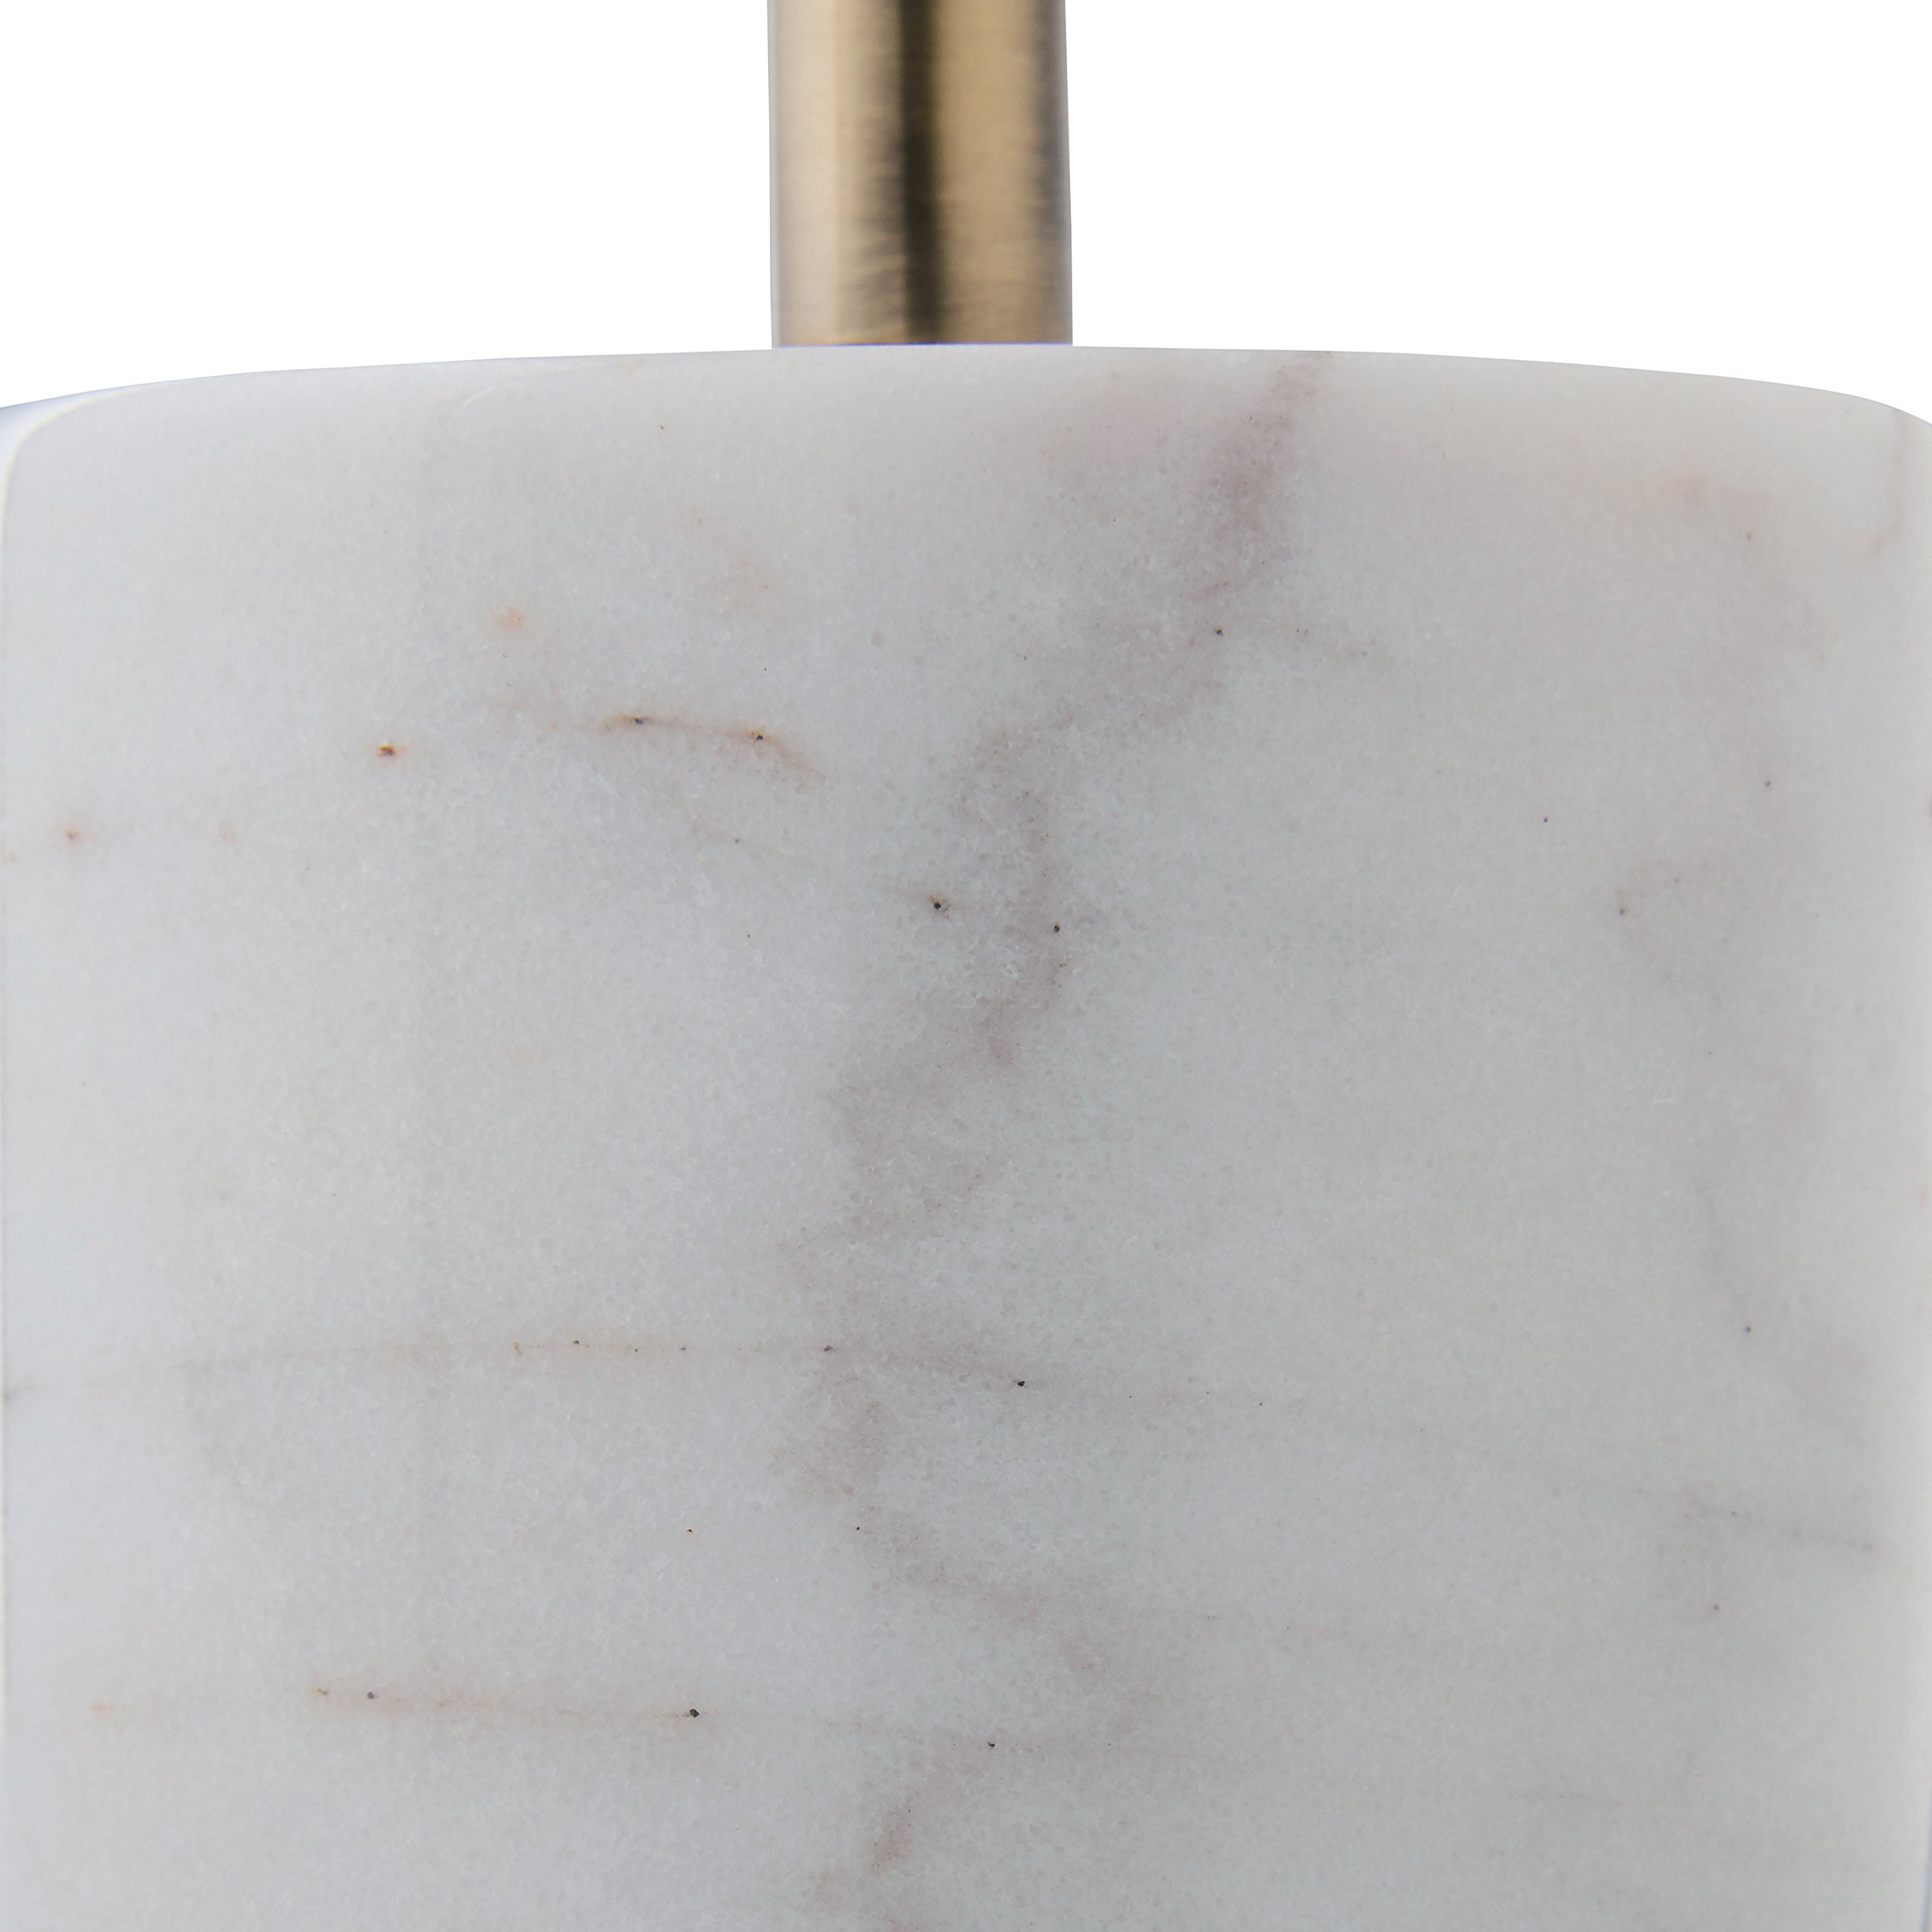 Rivet Modern Glass Globe and Marble Table Lamp with LED Bulb, 23''H, Brass, White by Rivet (Image #2)